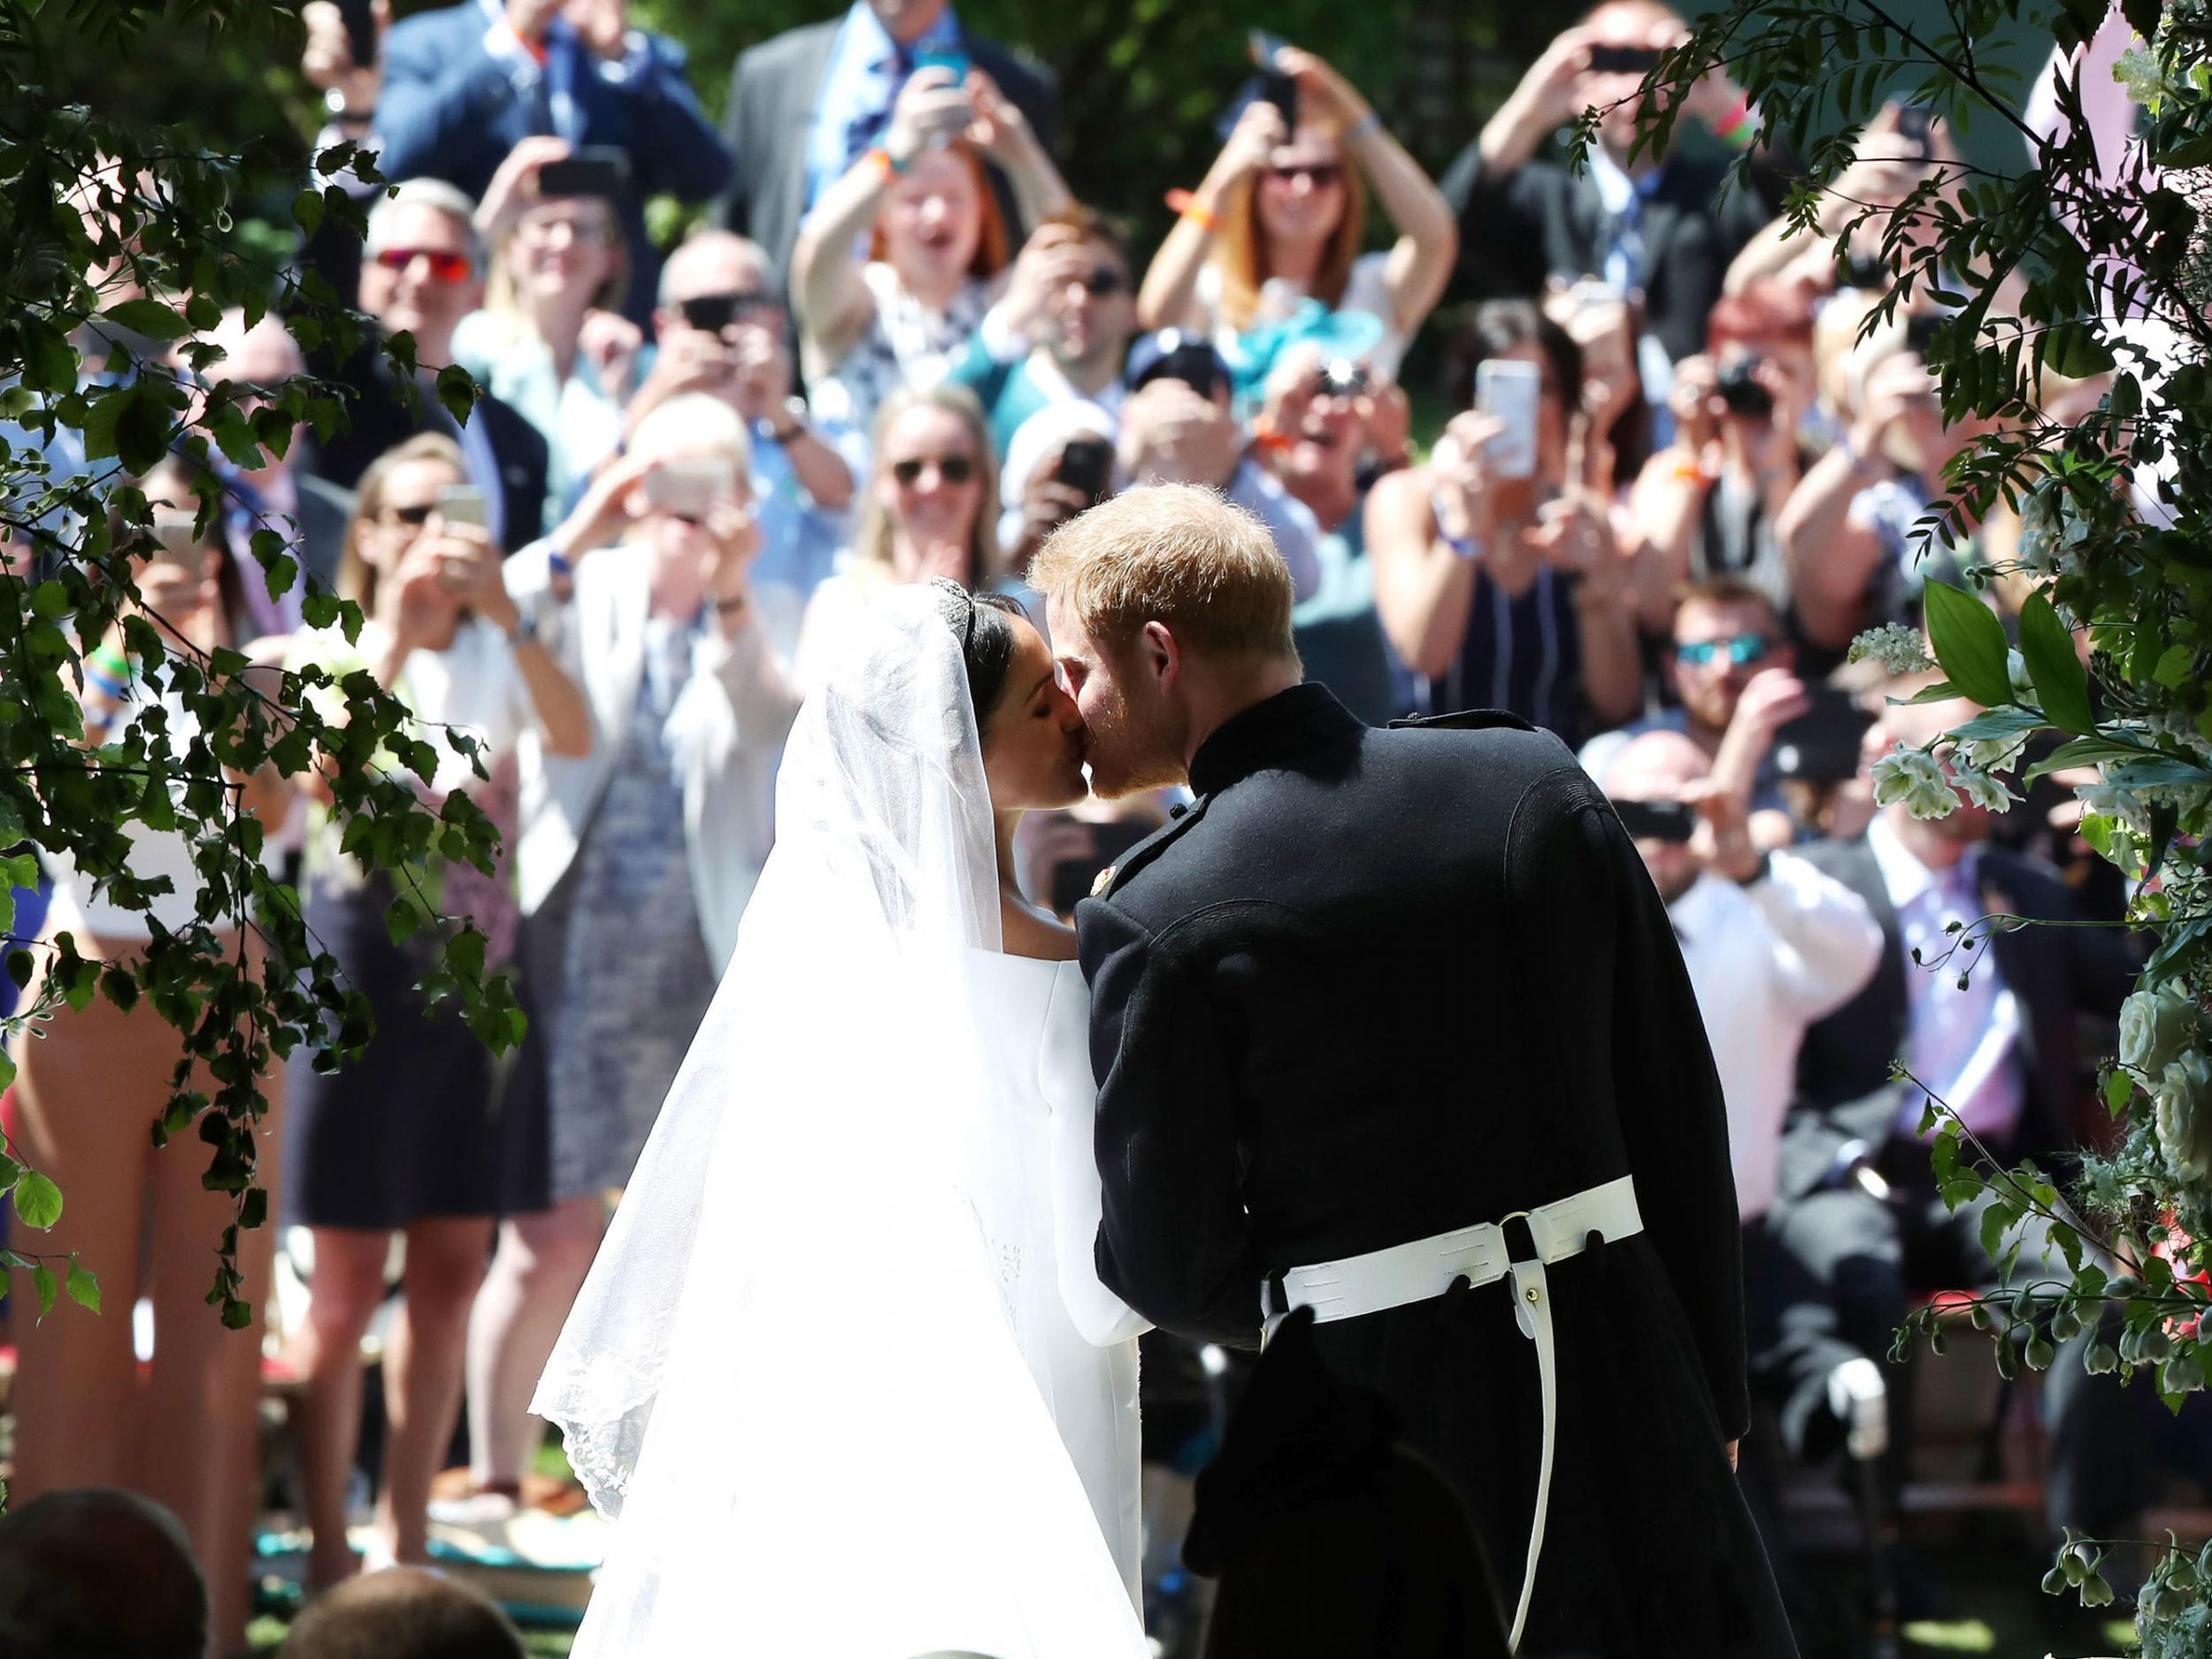 Black Preacher At Royal Wedding.Royal Wedding Live Meghan Markle S Givenchy Dress And Preacher